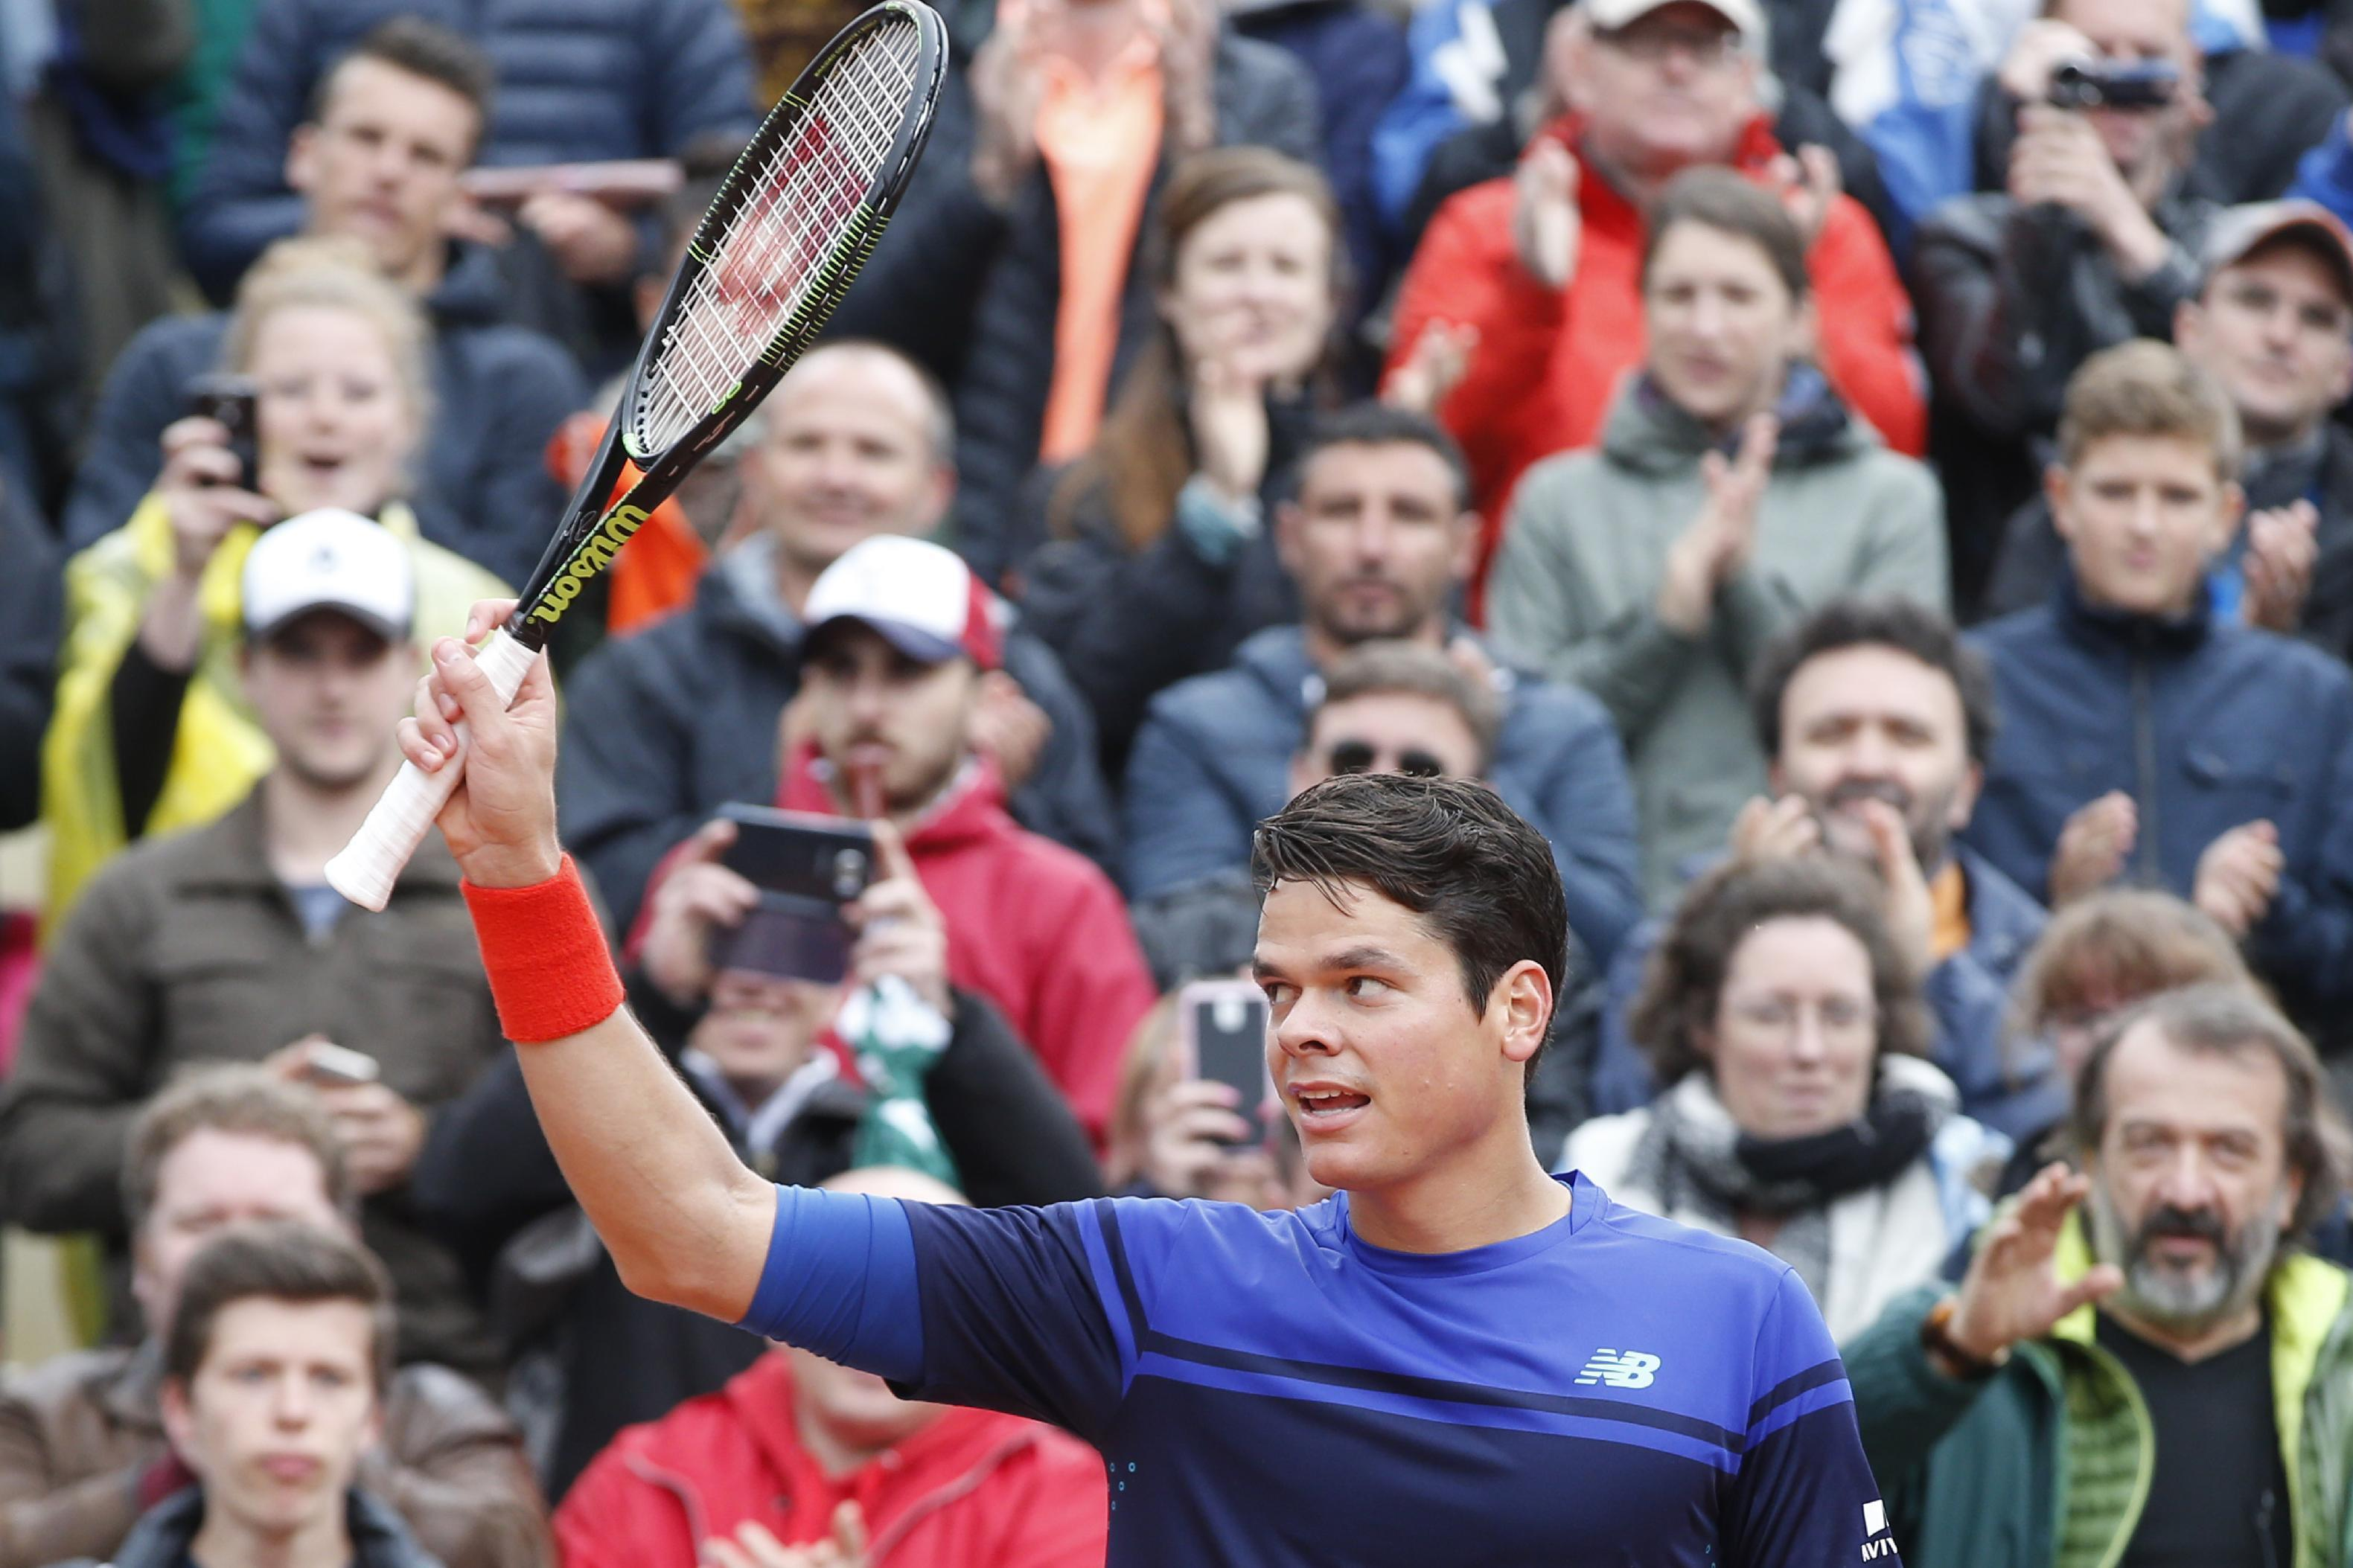 French Open Lookahead: Raonic's serve could be 'painful'